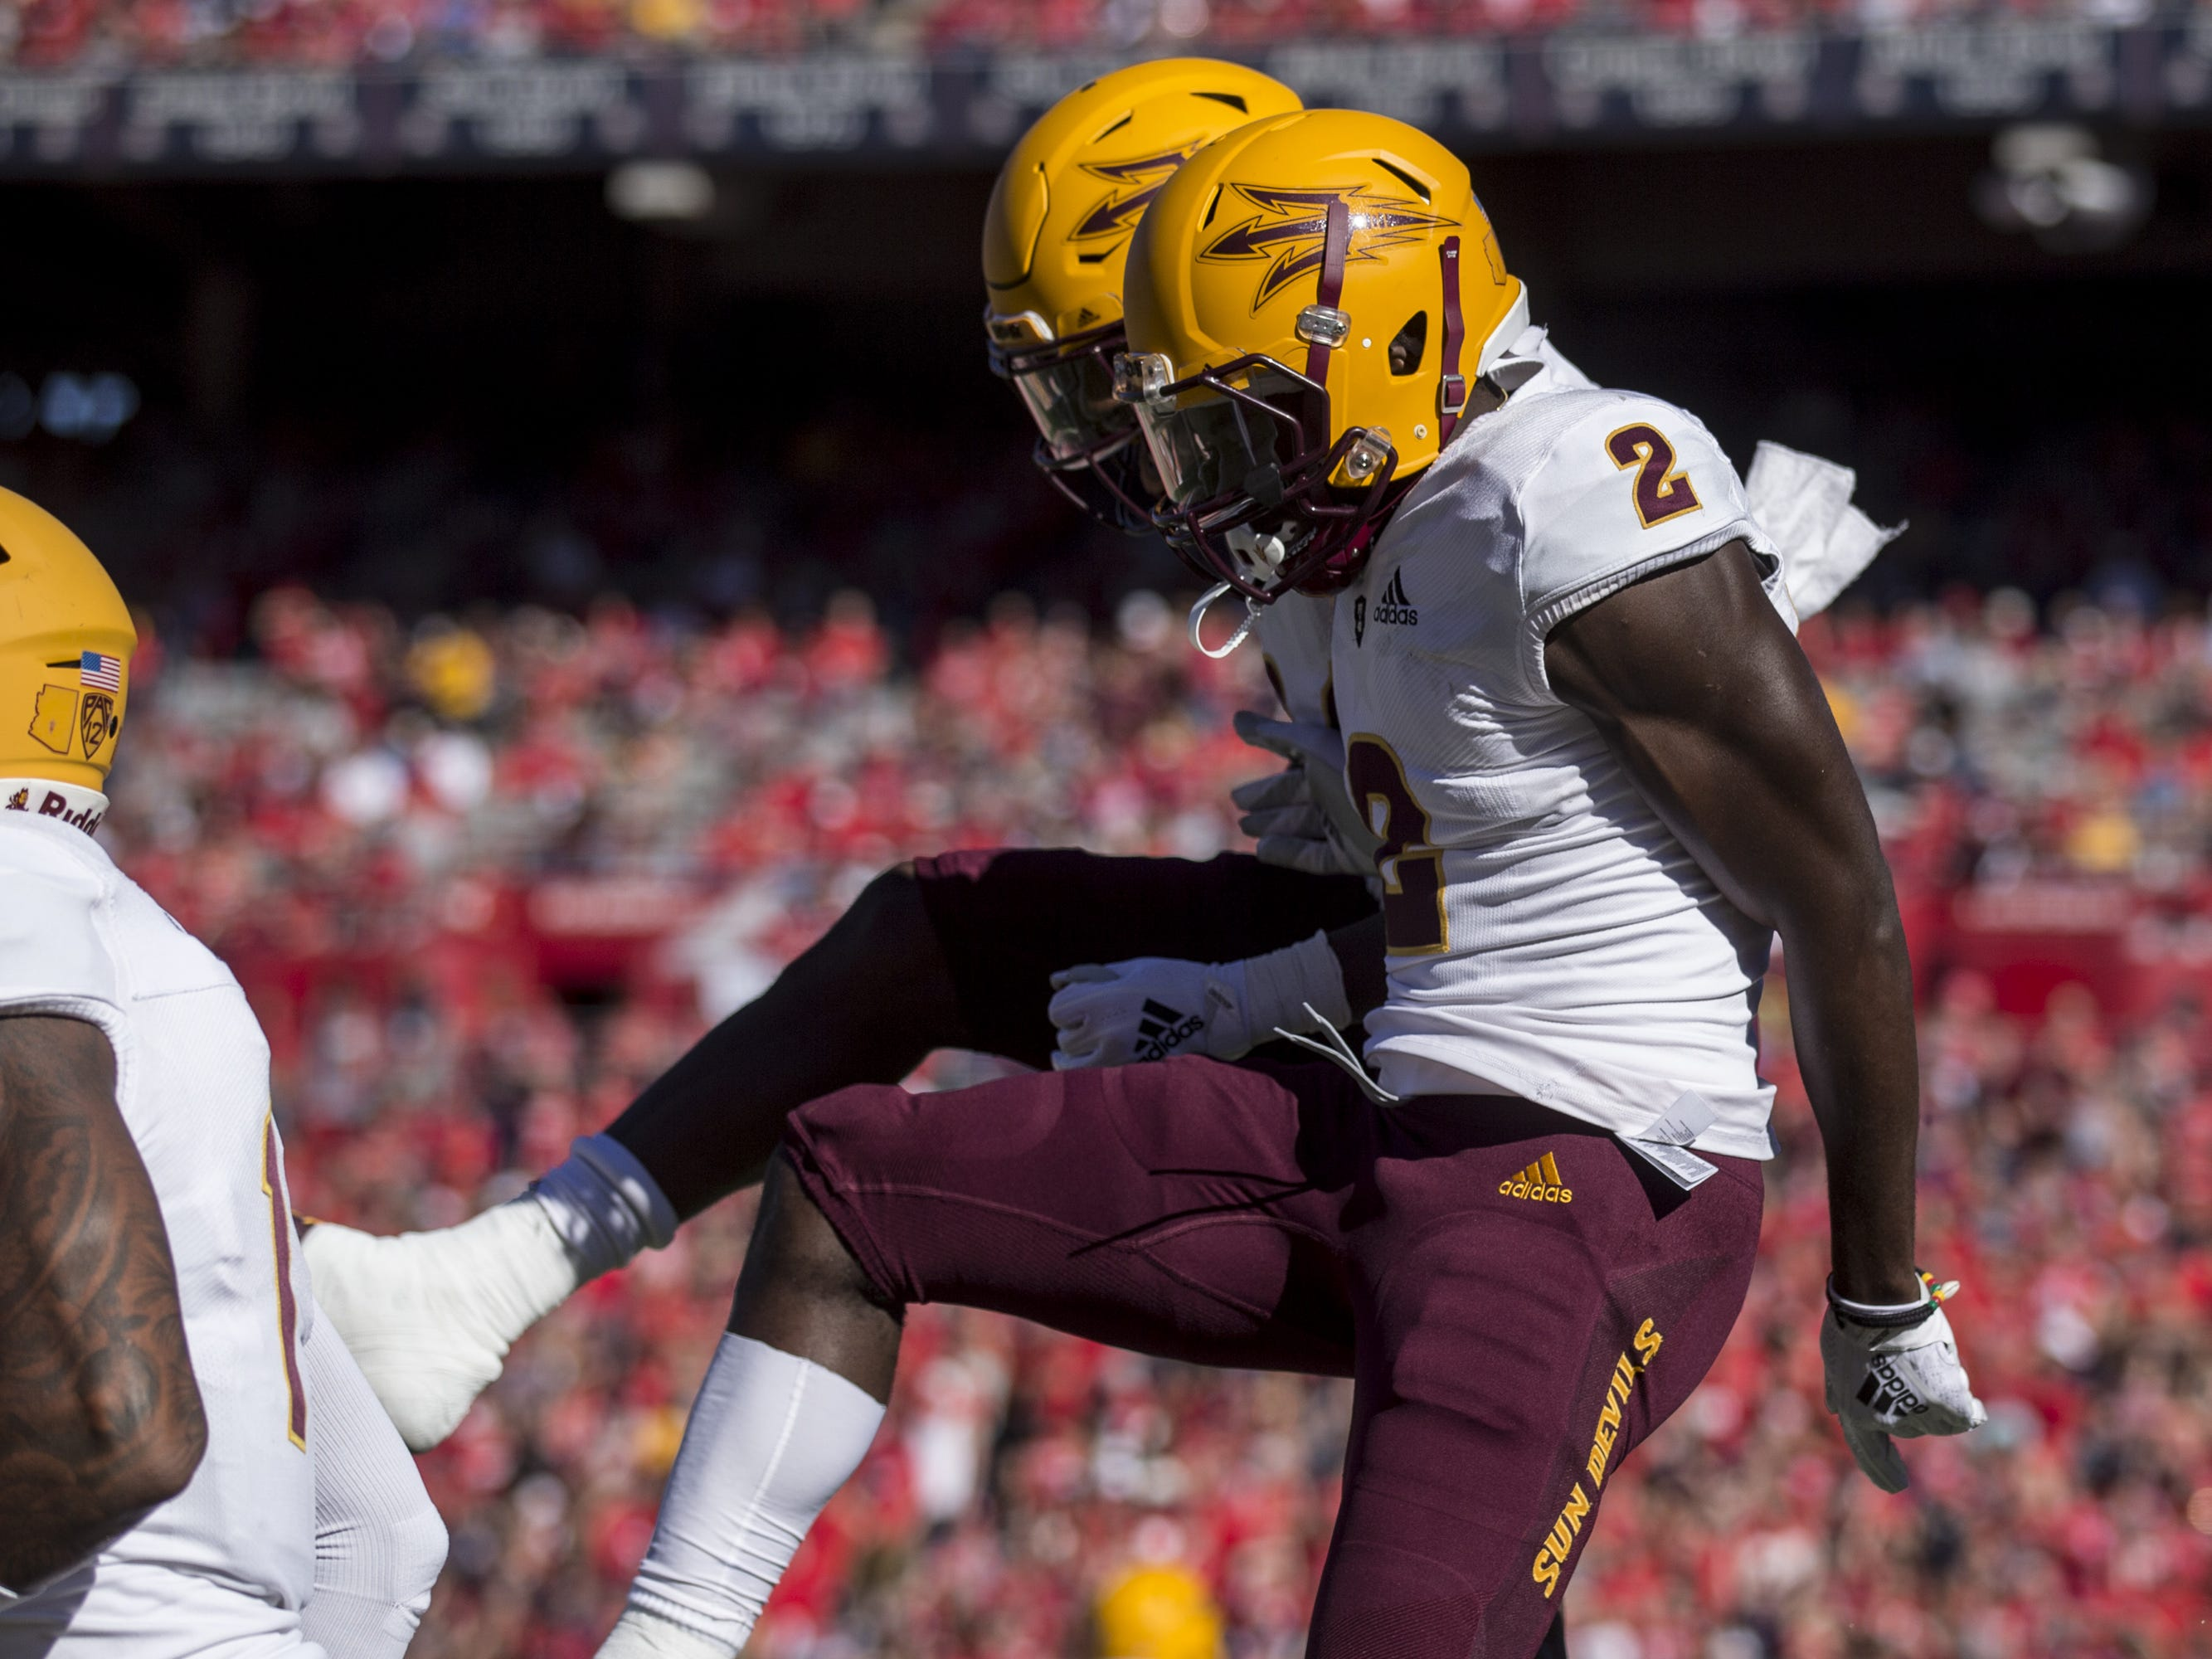 Arizona State's Brandon Aiyuk celebrates with Frank Darby after Aiyuk scored a touchdown reception against Arizona during the first half of the Territorial Cup on Saturday, Nov. 24, 2018, at Arizona Stadium in Tucson, Ariz.